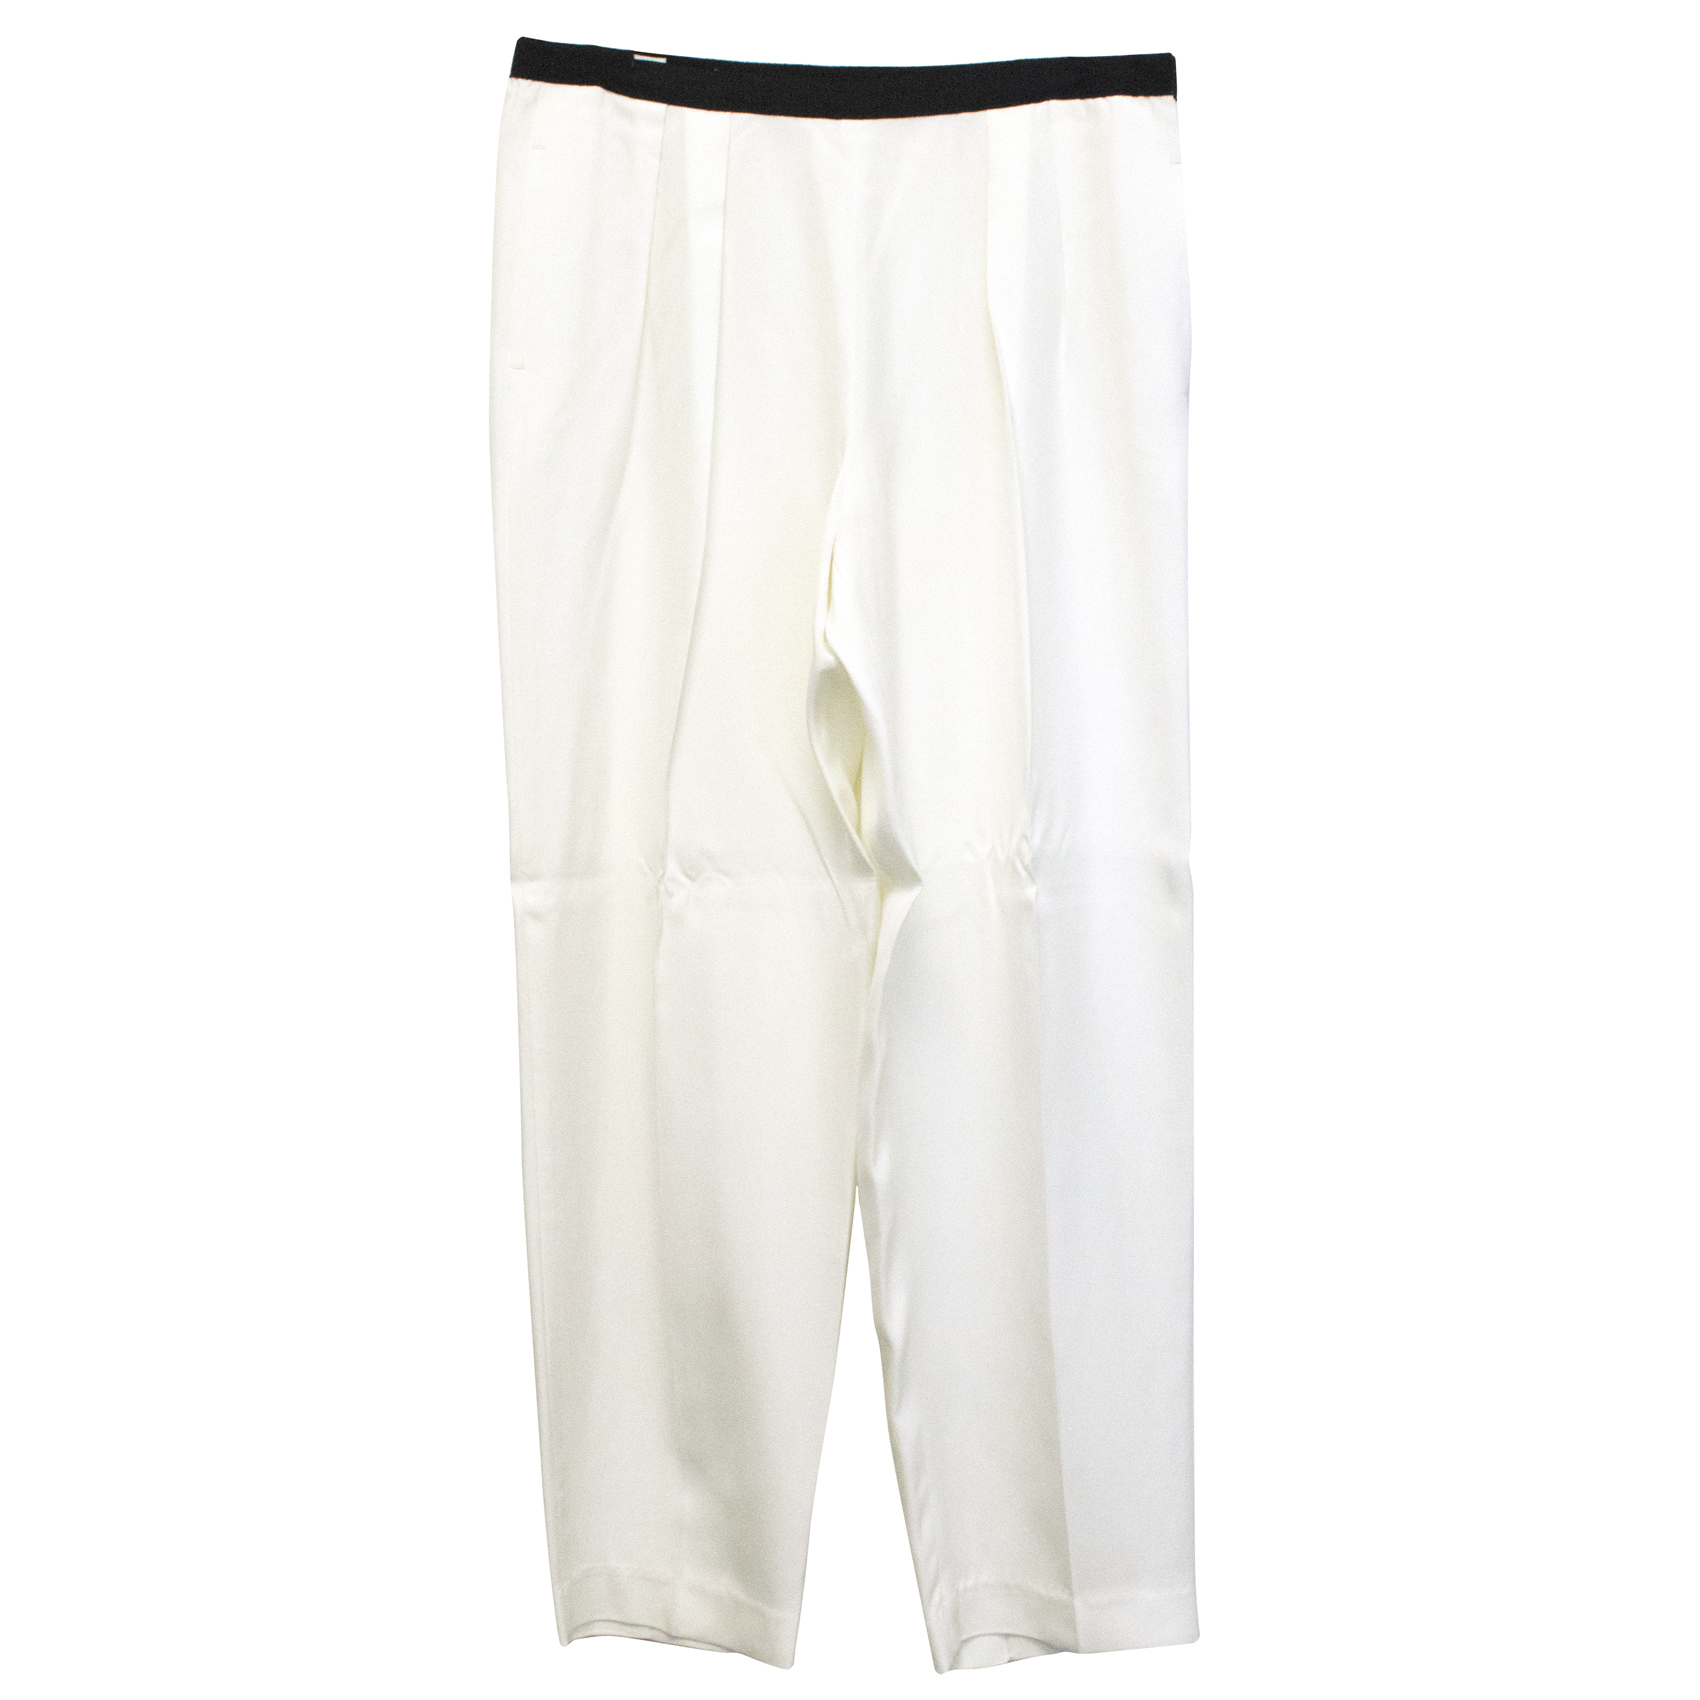 Dries Van Noten White Trousers